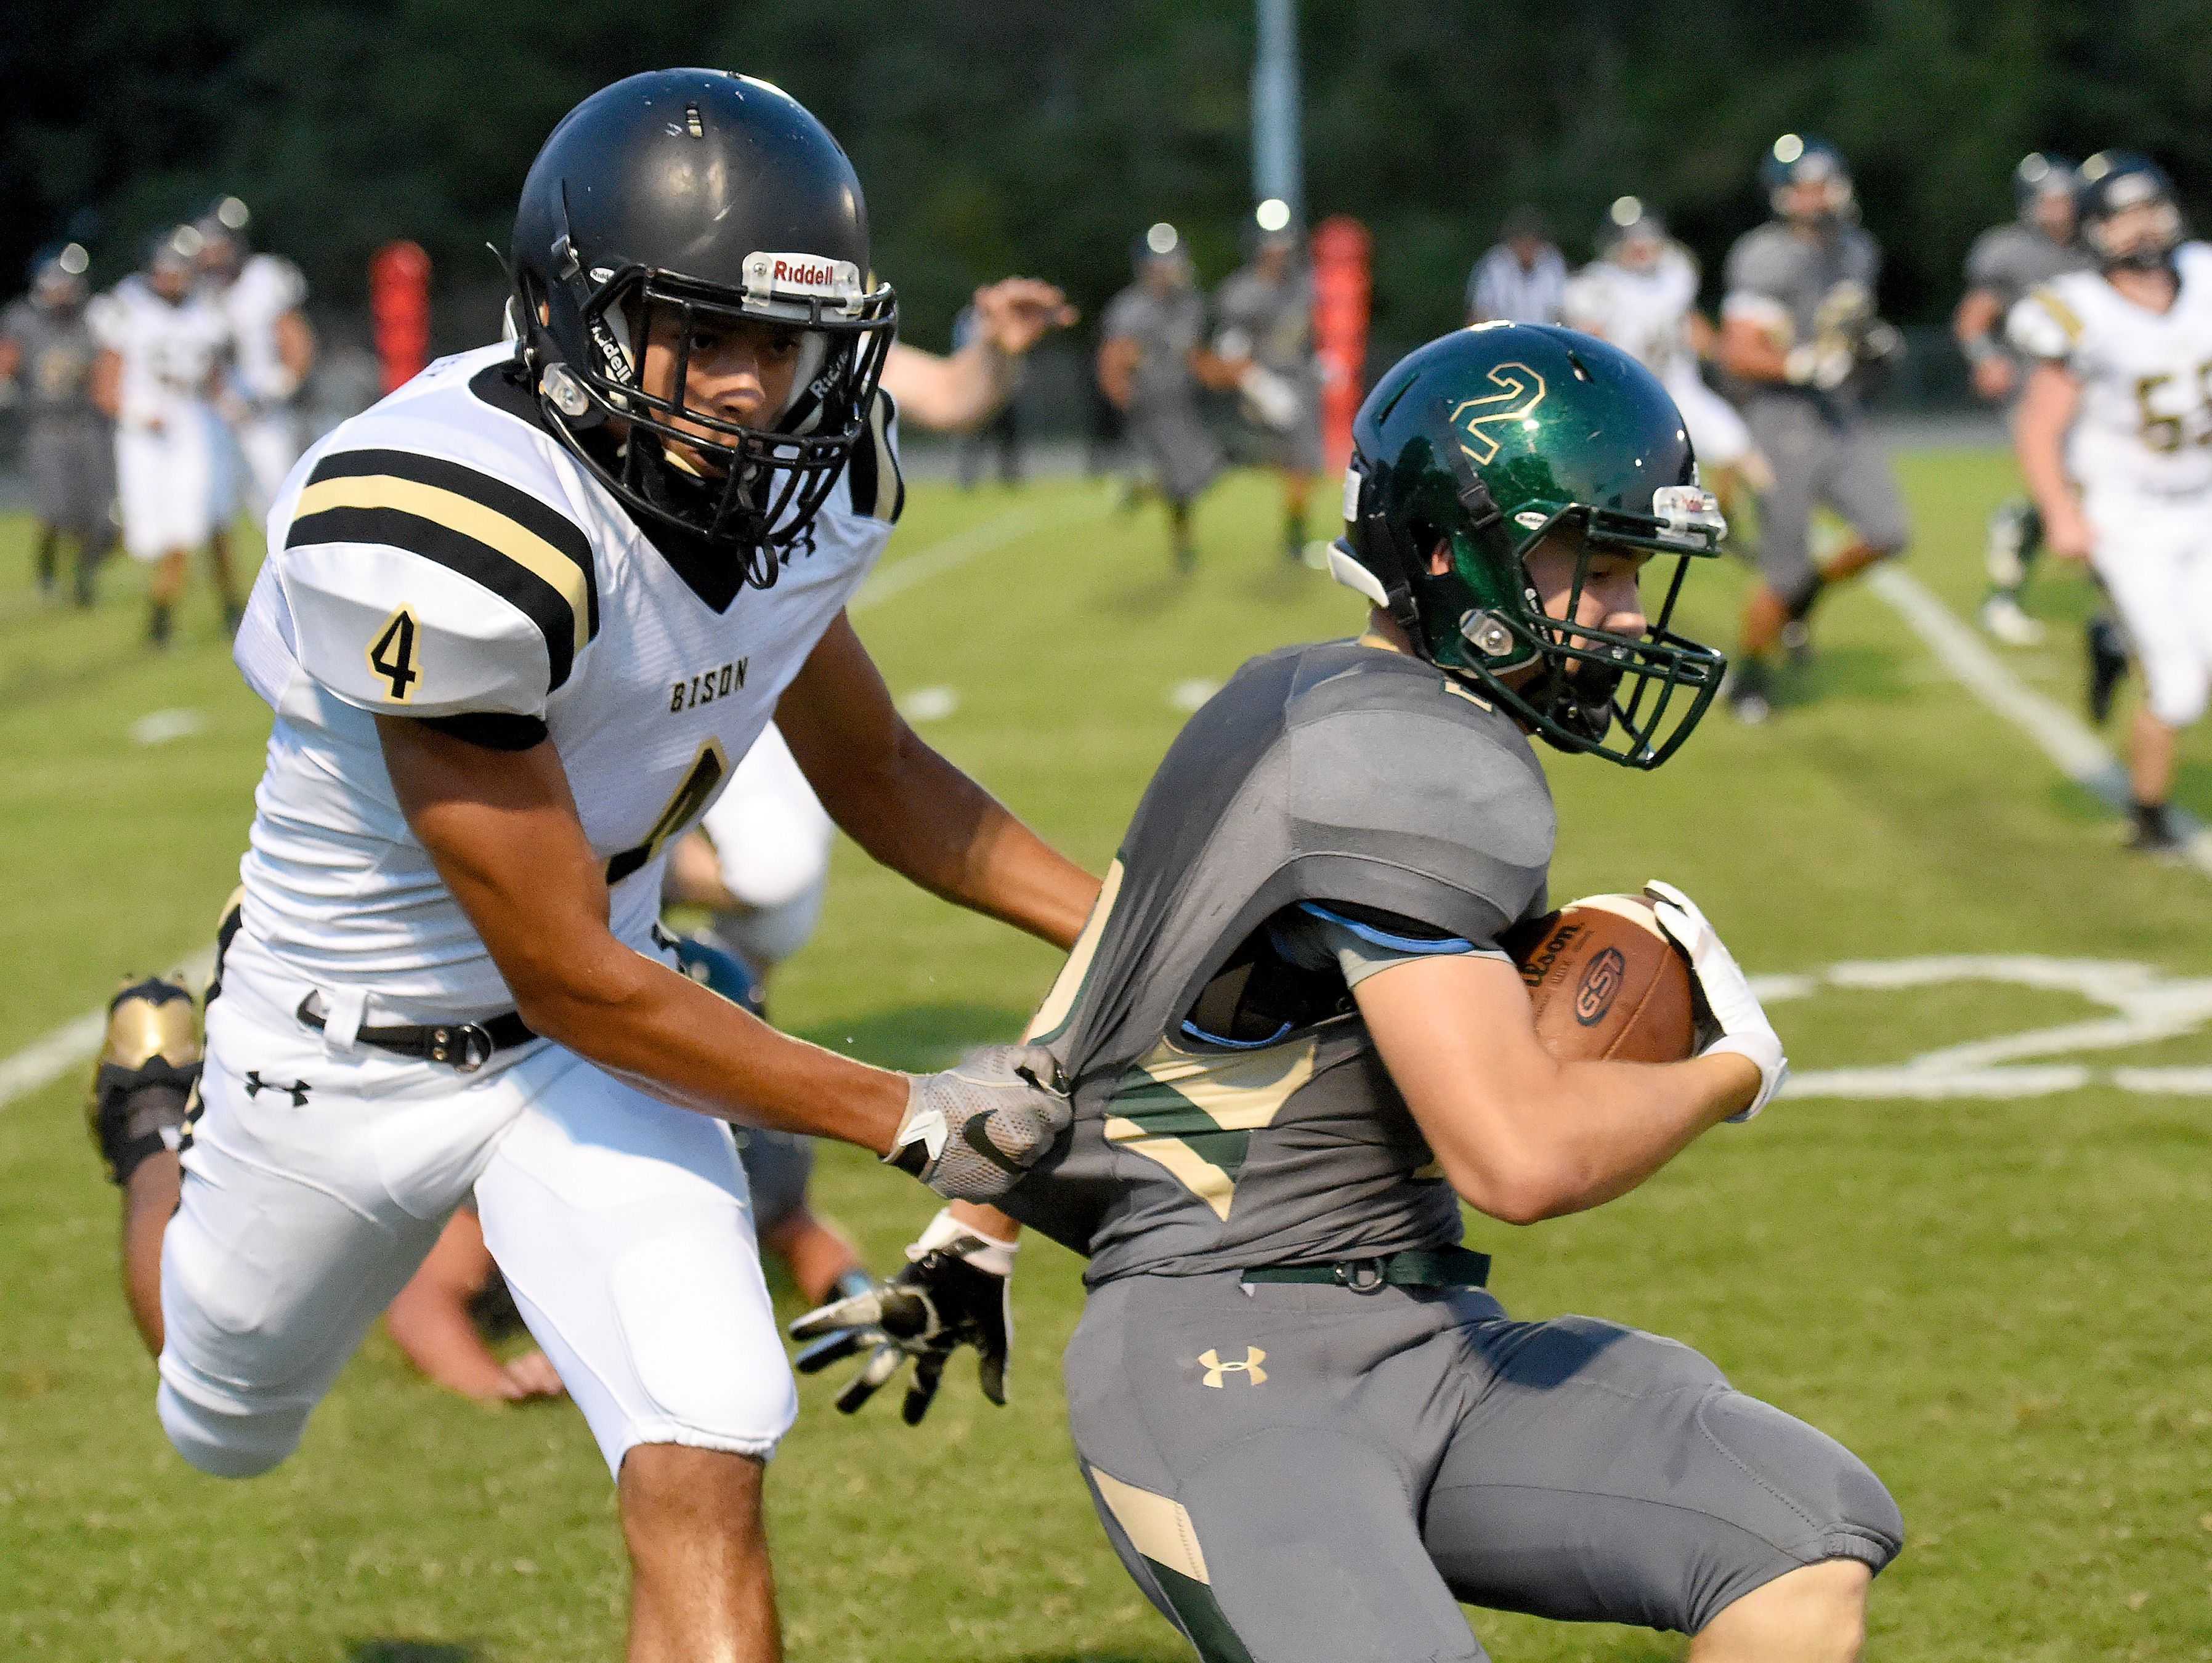 Buffalo Gap's Jay Johnson goes for the tackle against Wilson Memorial's Colton Tyree during a football game played in Fishersville on Friday, Sept. 23, 2016.